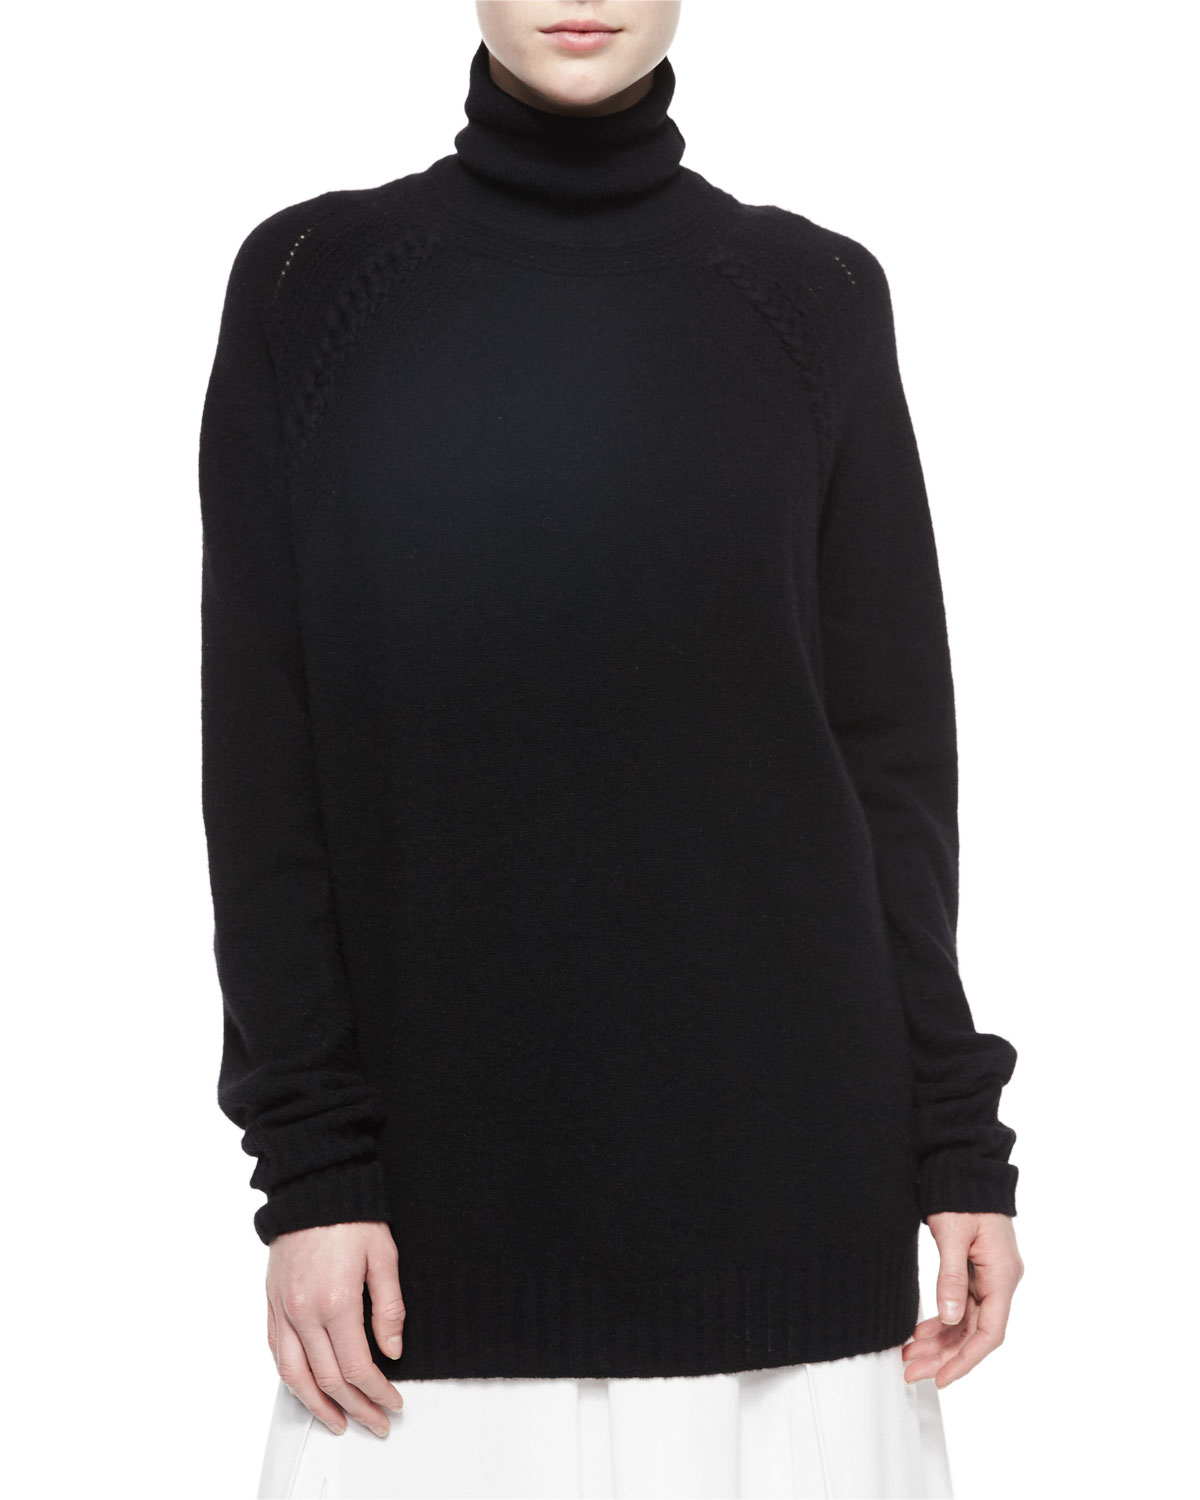 Apt 9 Cashmere Sweater